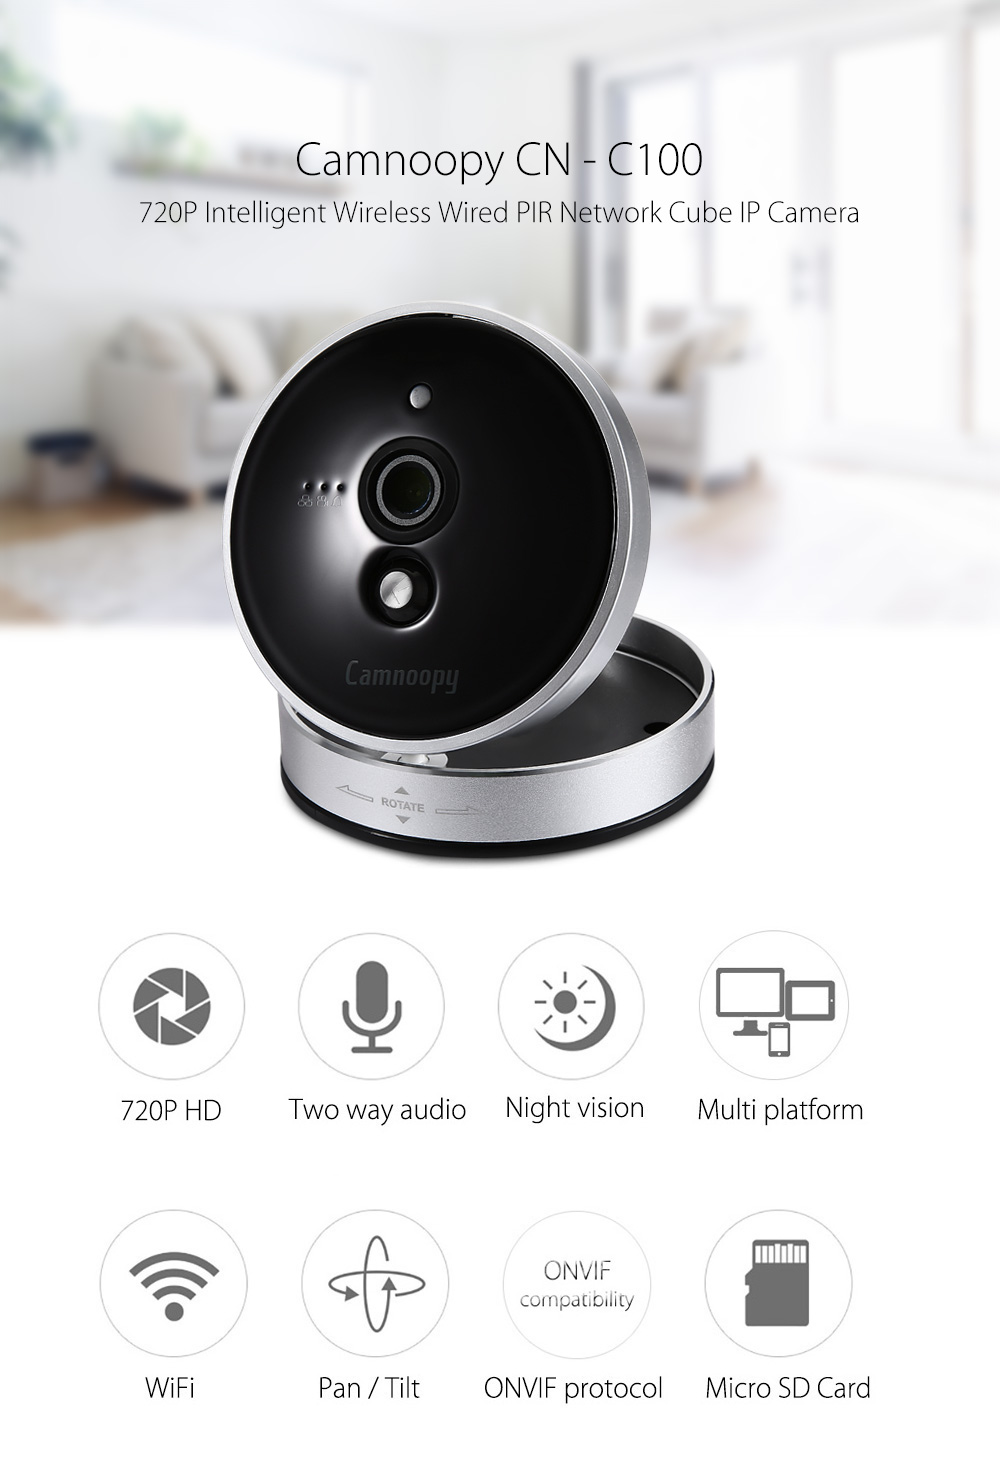 Camnoopy CN - C100 720P Intelligent Wireless Wired PIR Network Cube IP Camera